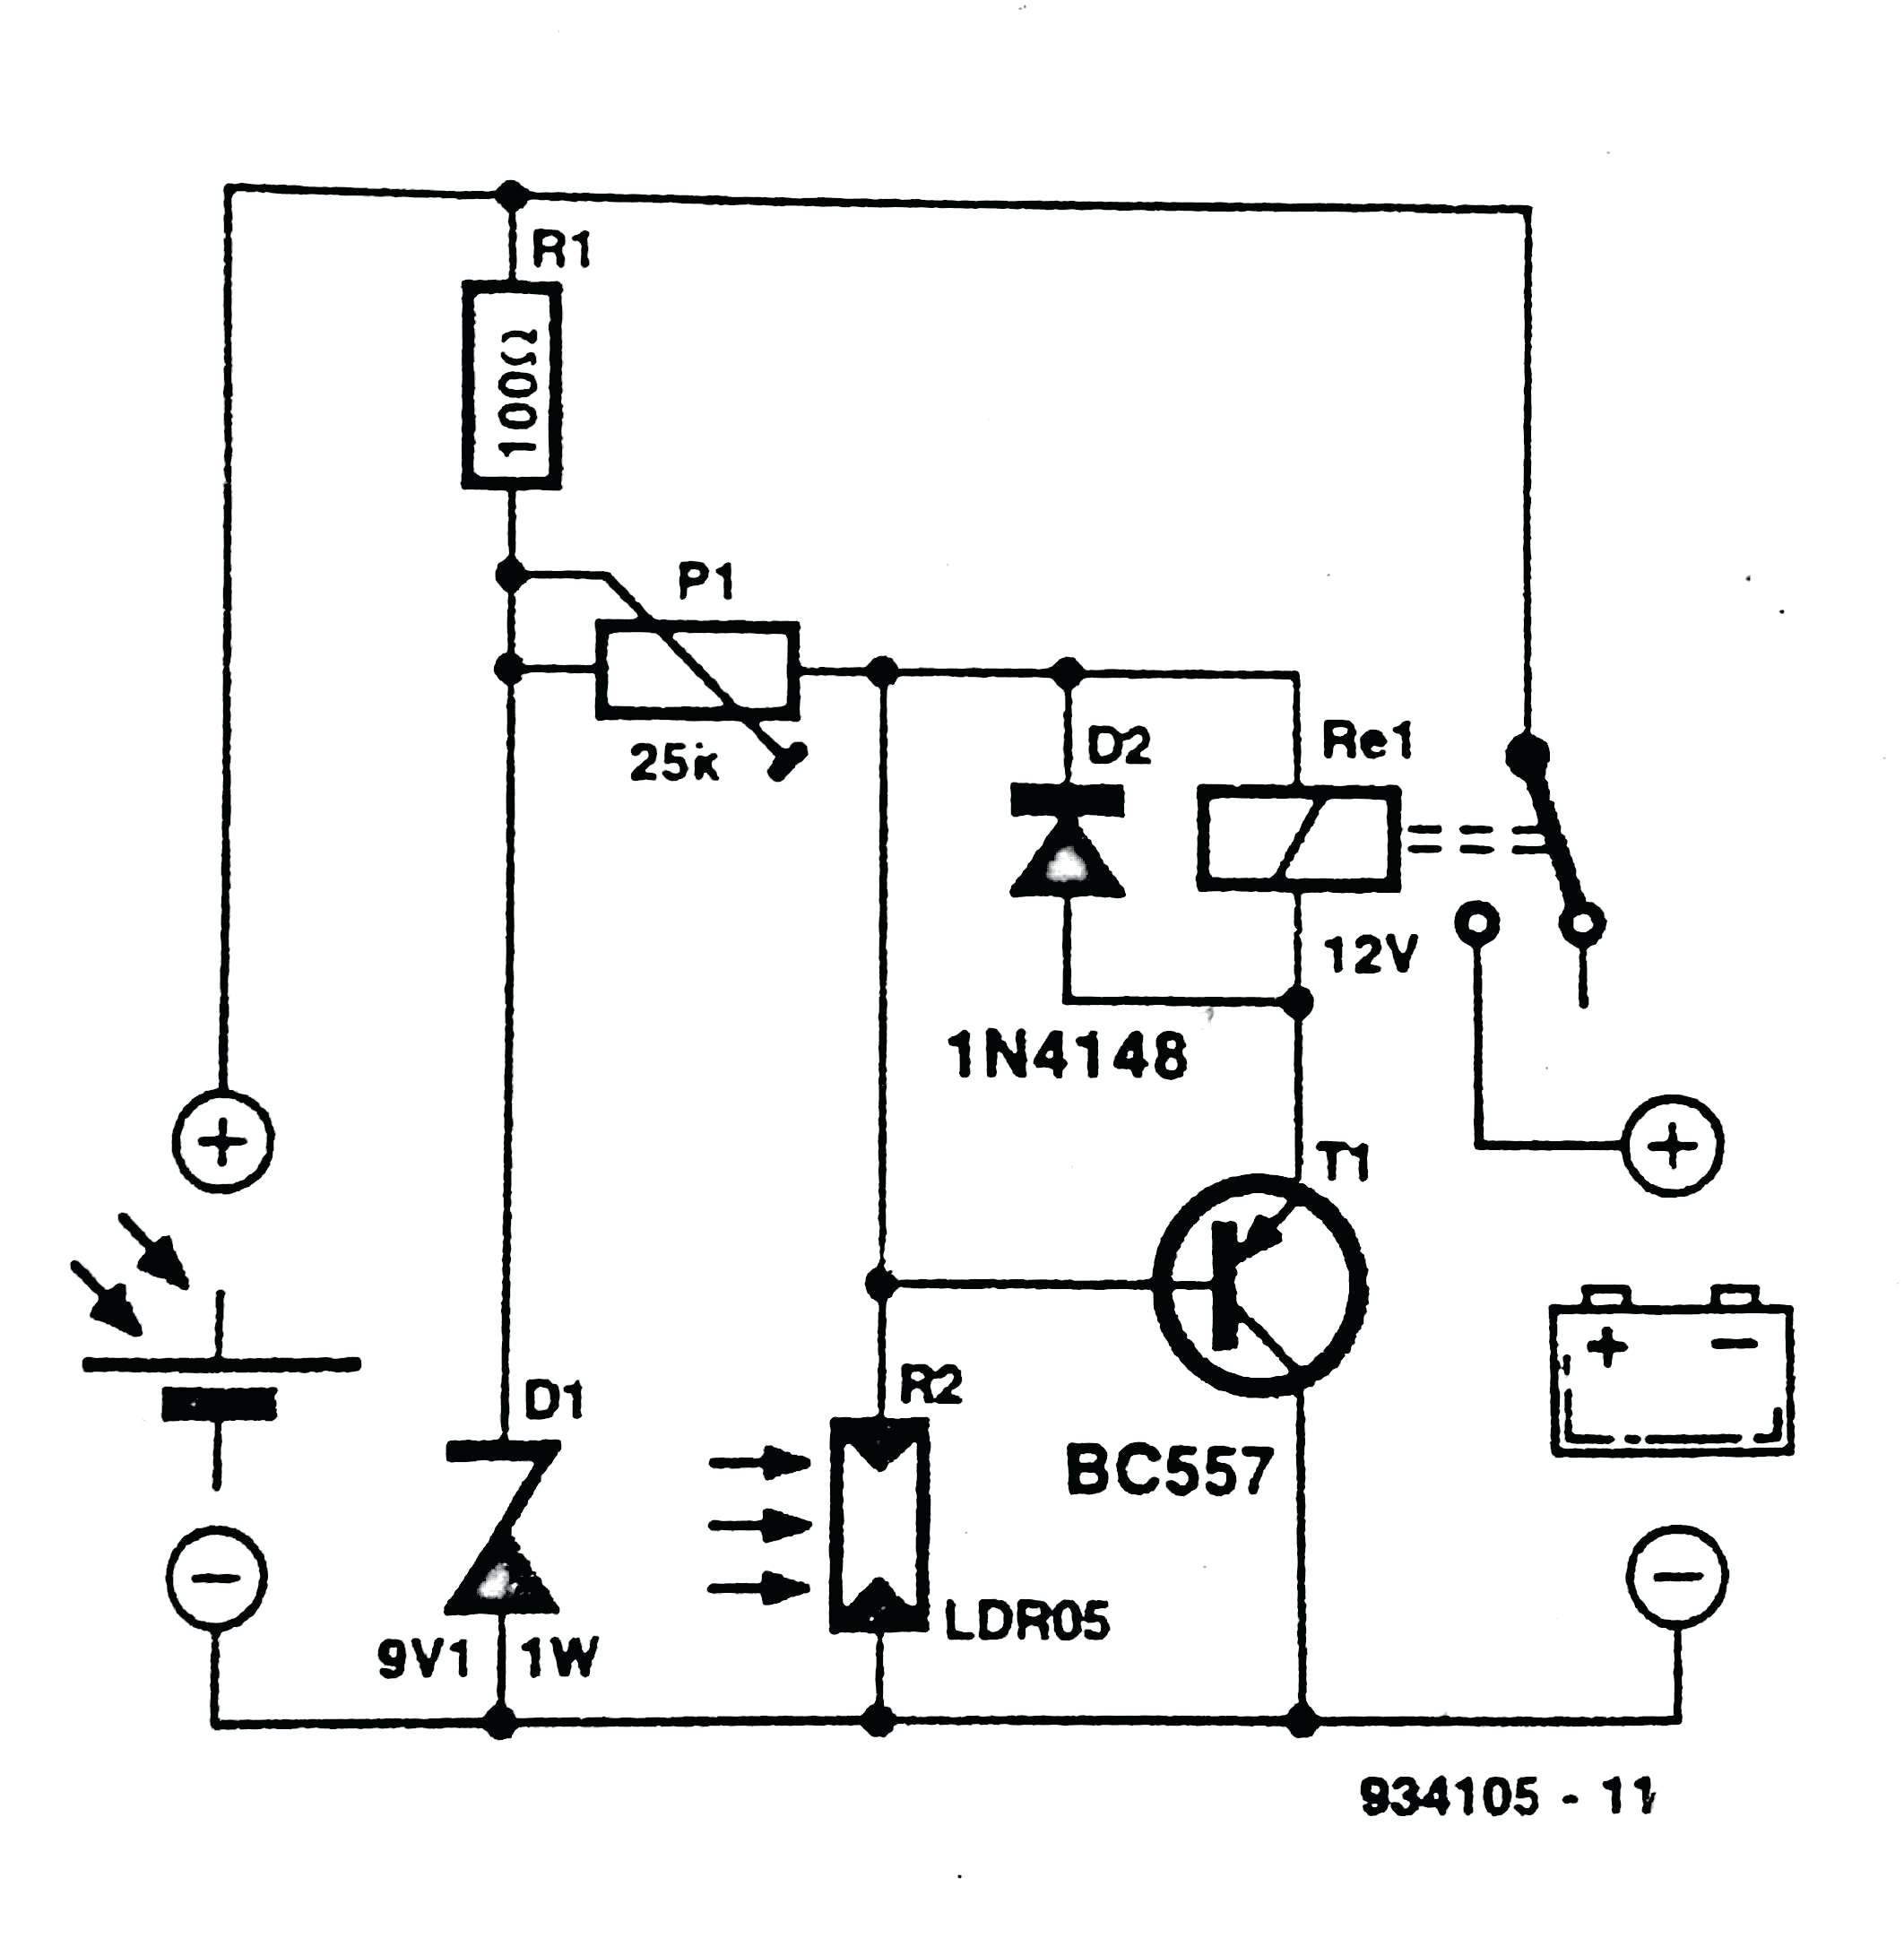 fronius rapid shutdown wiring diagram Collection-Wiring Diagram Detail Name fronius rapid shutdown 6-f